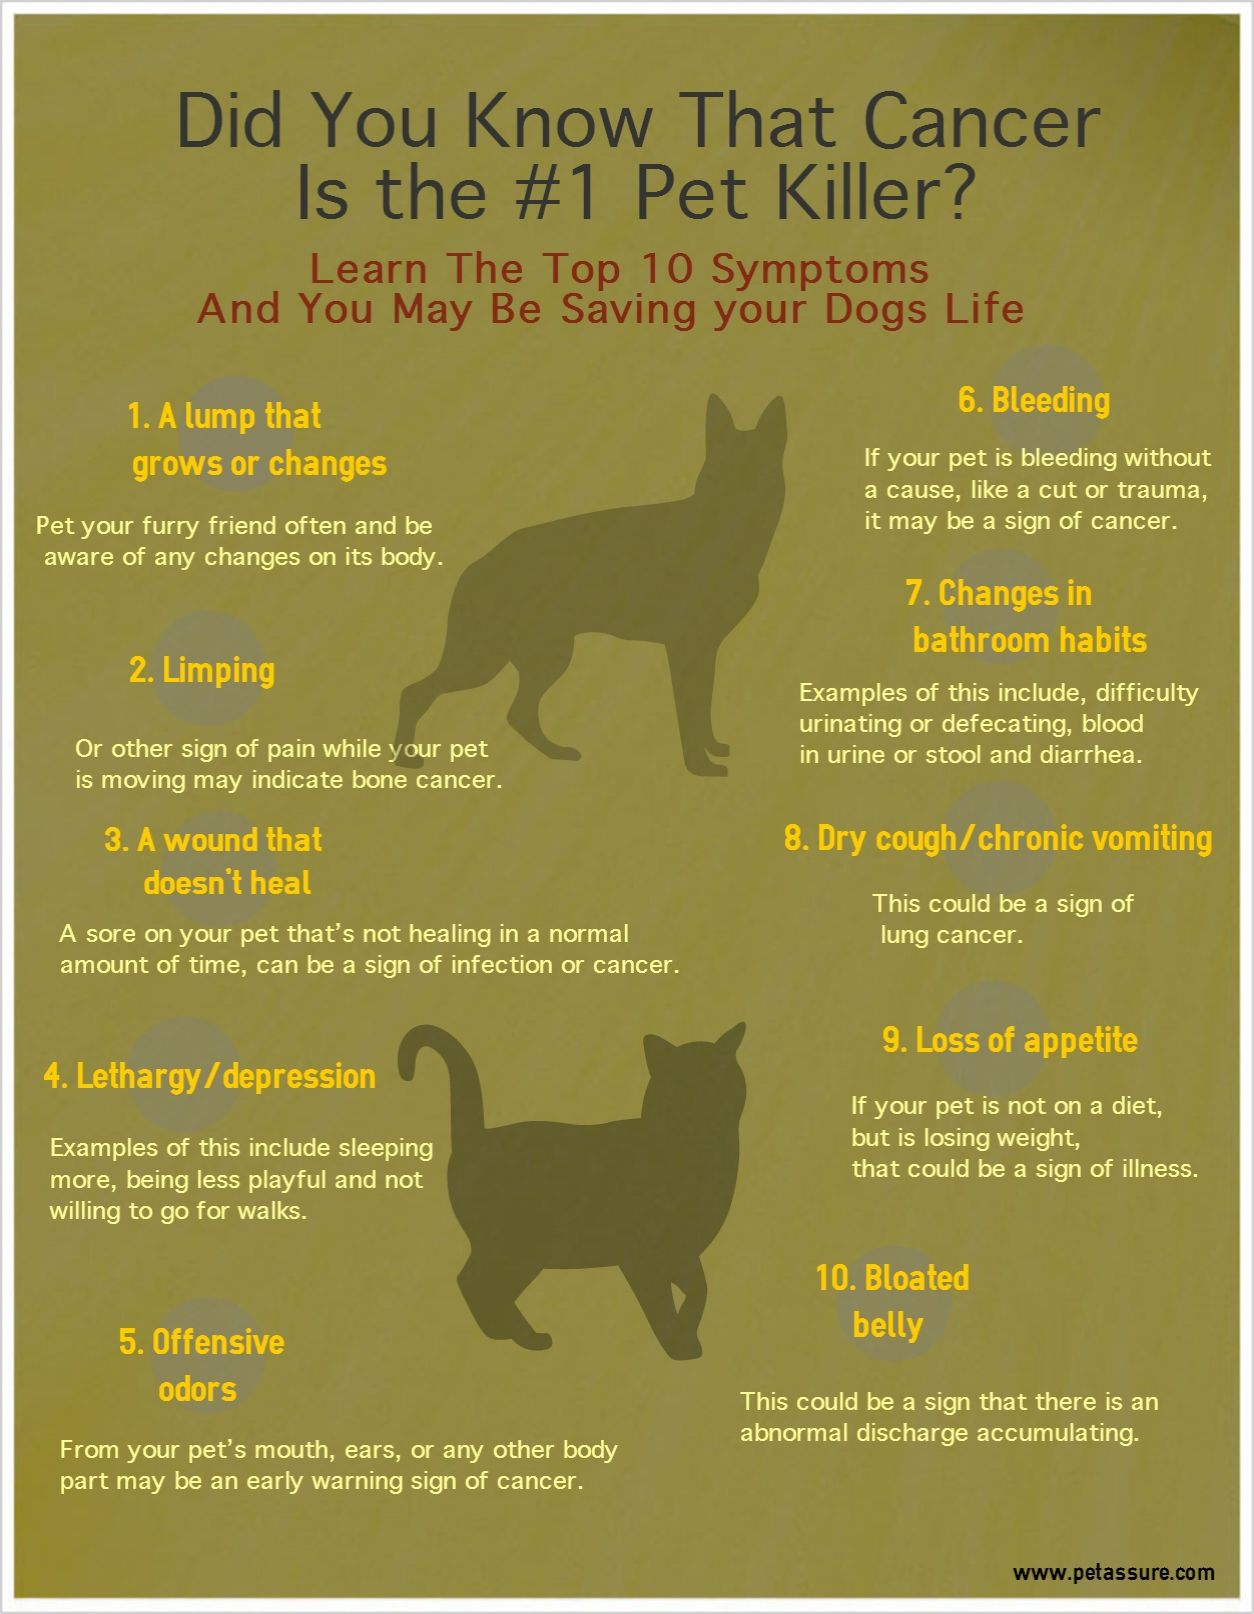 The Top Ten Warning Signs of Pet Cancer May is Pet